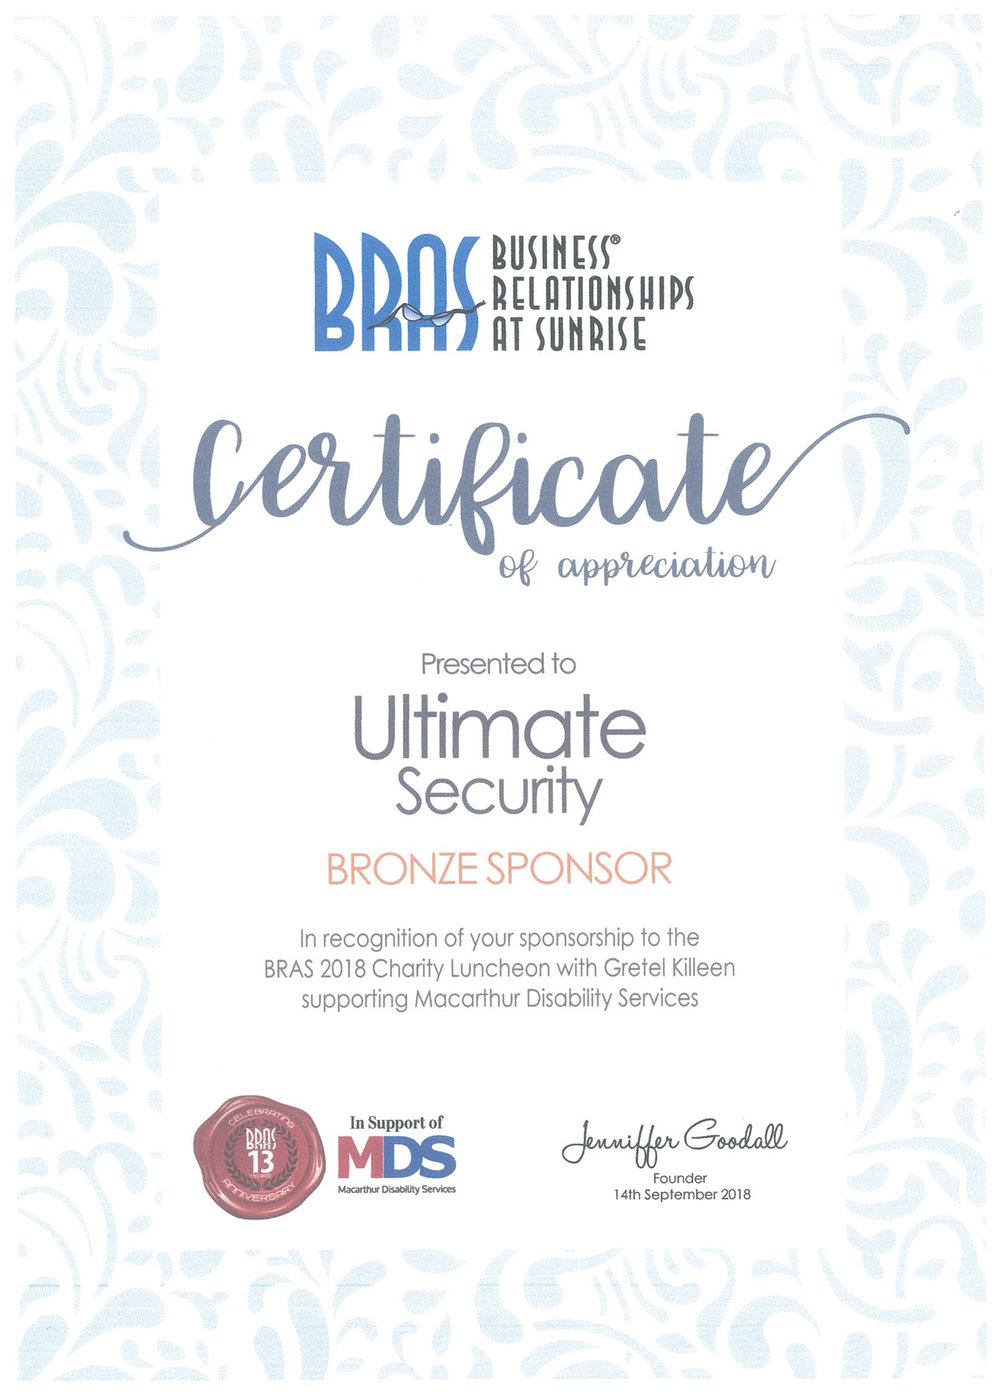 BRAS 2018 Charity Luncheon supporting Macarthur Disability Services